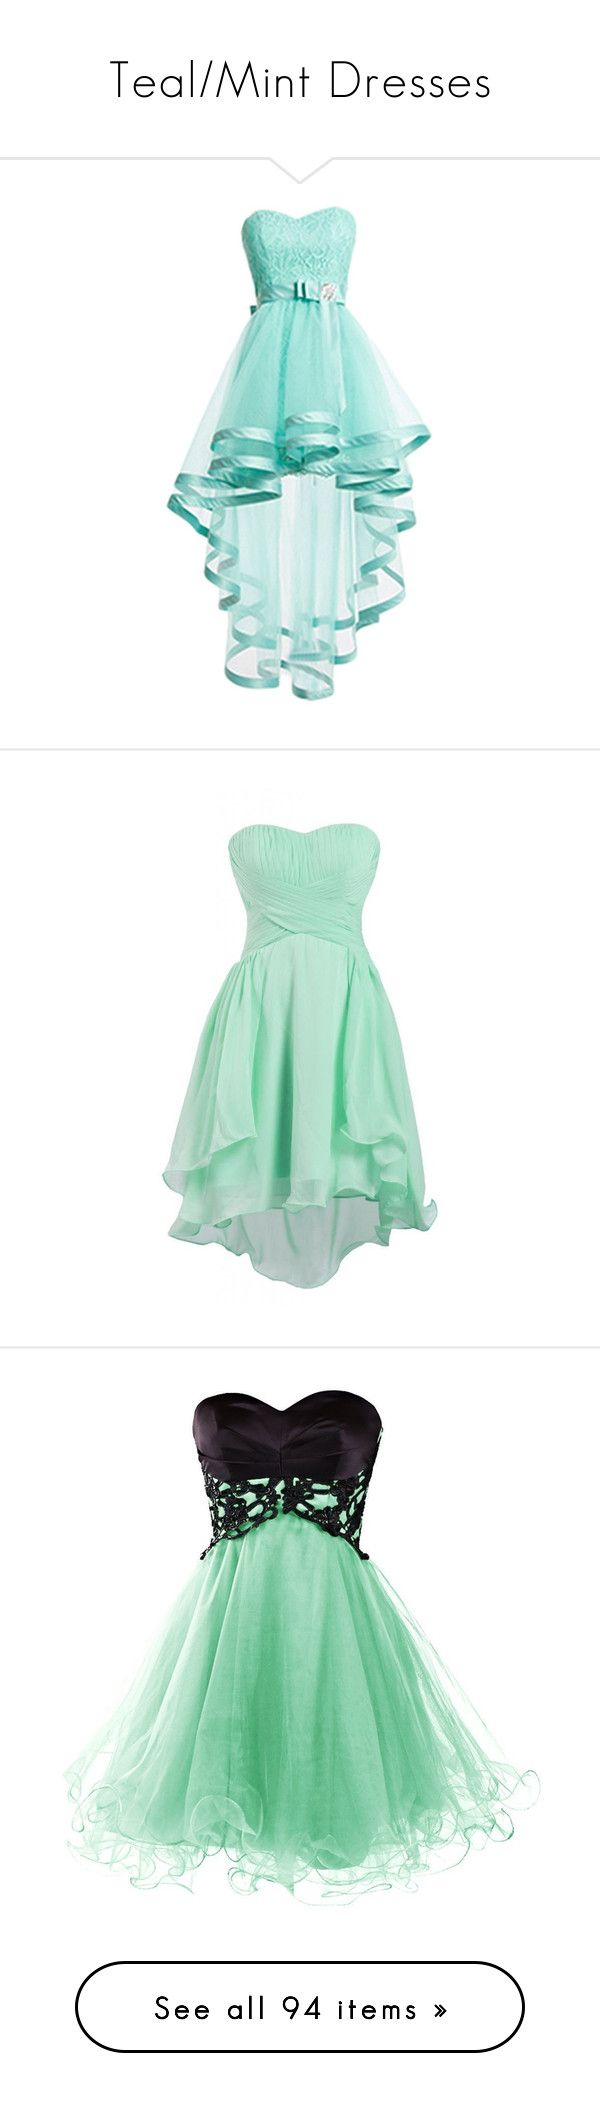 """""""Teal/Mint Dresses"""" by megsjessd99 ❤ liked on Polyvore featuring dresses, short dresses, blue, robes, short lace dress, lace dress, short homecoming dresses, short prom dresses, lace cocktail dress and short chiffon dress"""